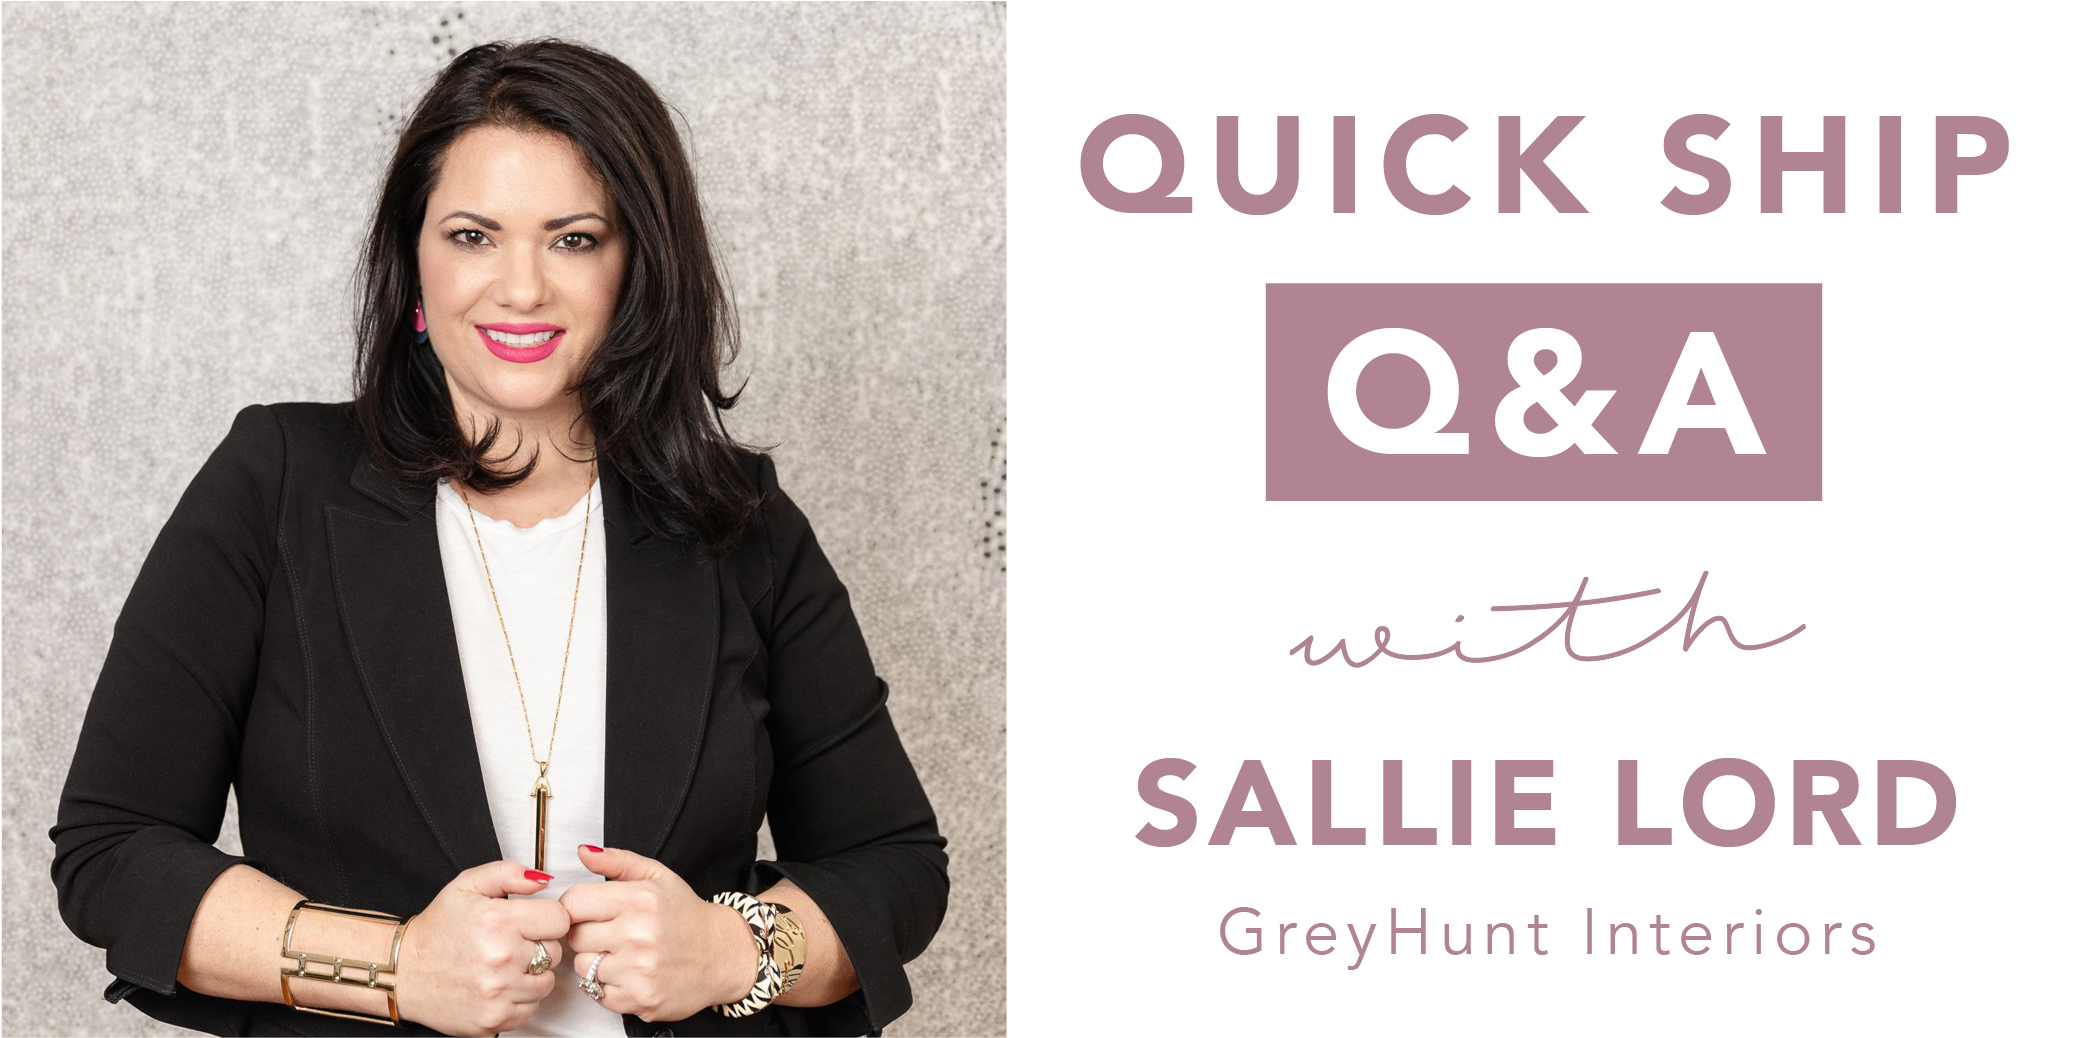 Quick Ship Q&A with Sallie Lord, GreyHunt Interiors